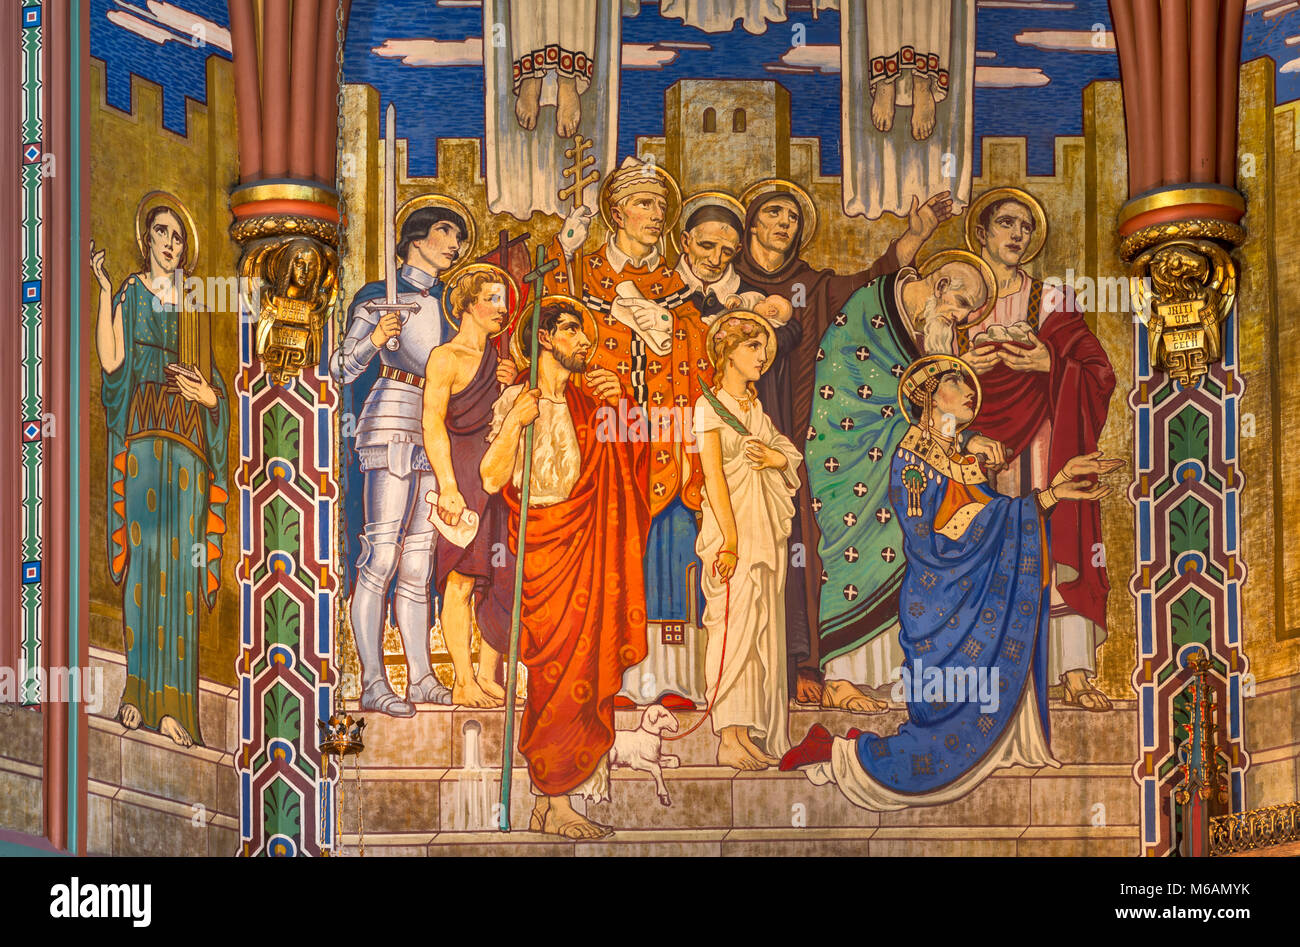 Prominent Christian figures at murals in Sanctuary of Cathedral of the Madeleine, Salt Lake City, Utah, USA - Stock Image